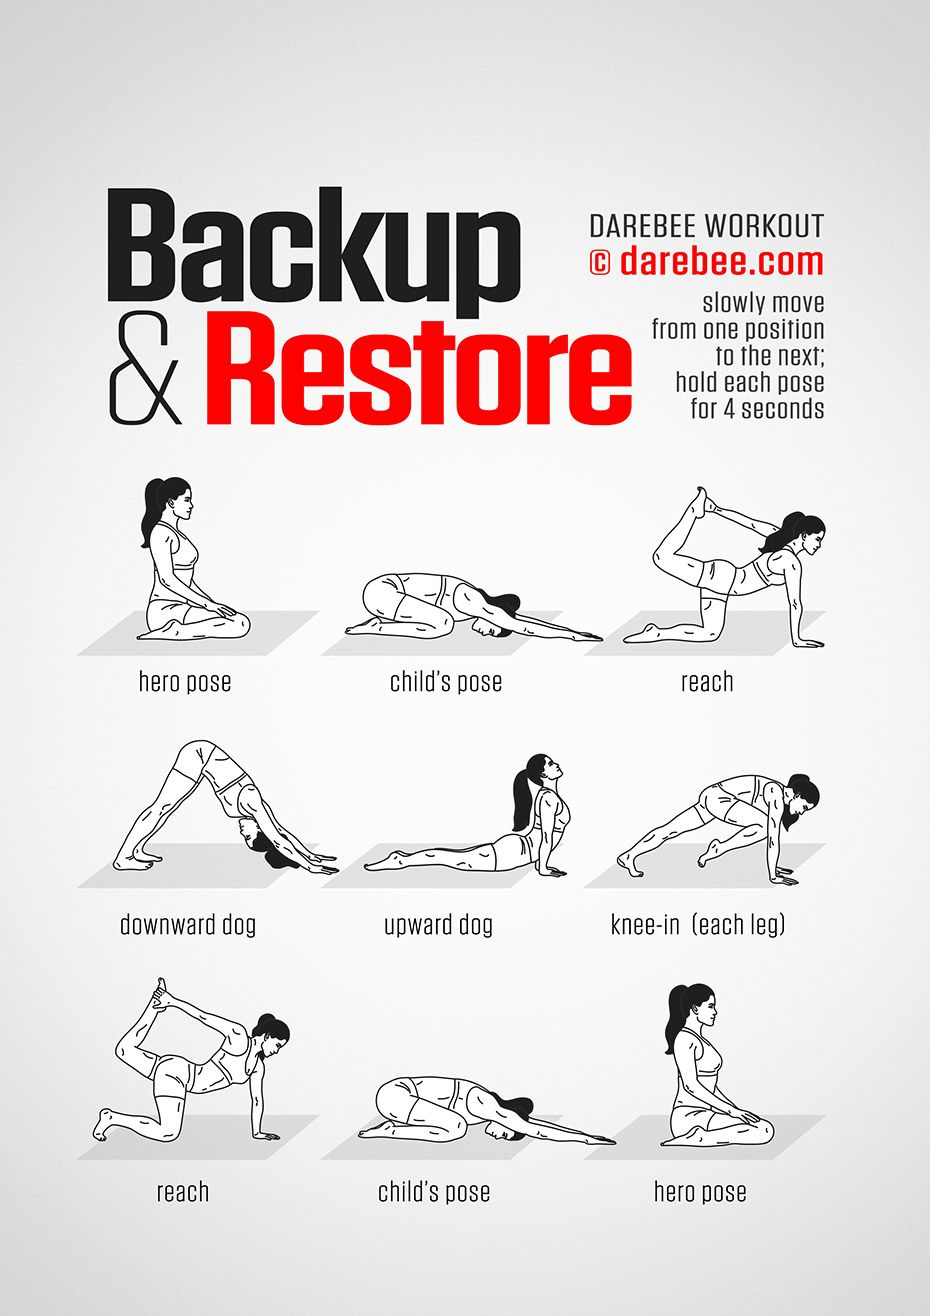 Backup & Restore Workout - Concentration - Full Body - Difficulty 2 Suitable for beginners